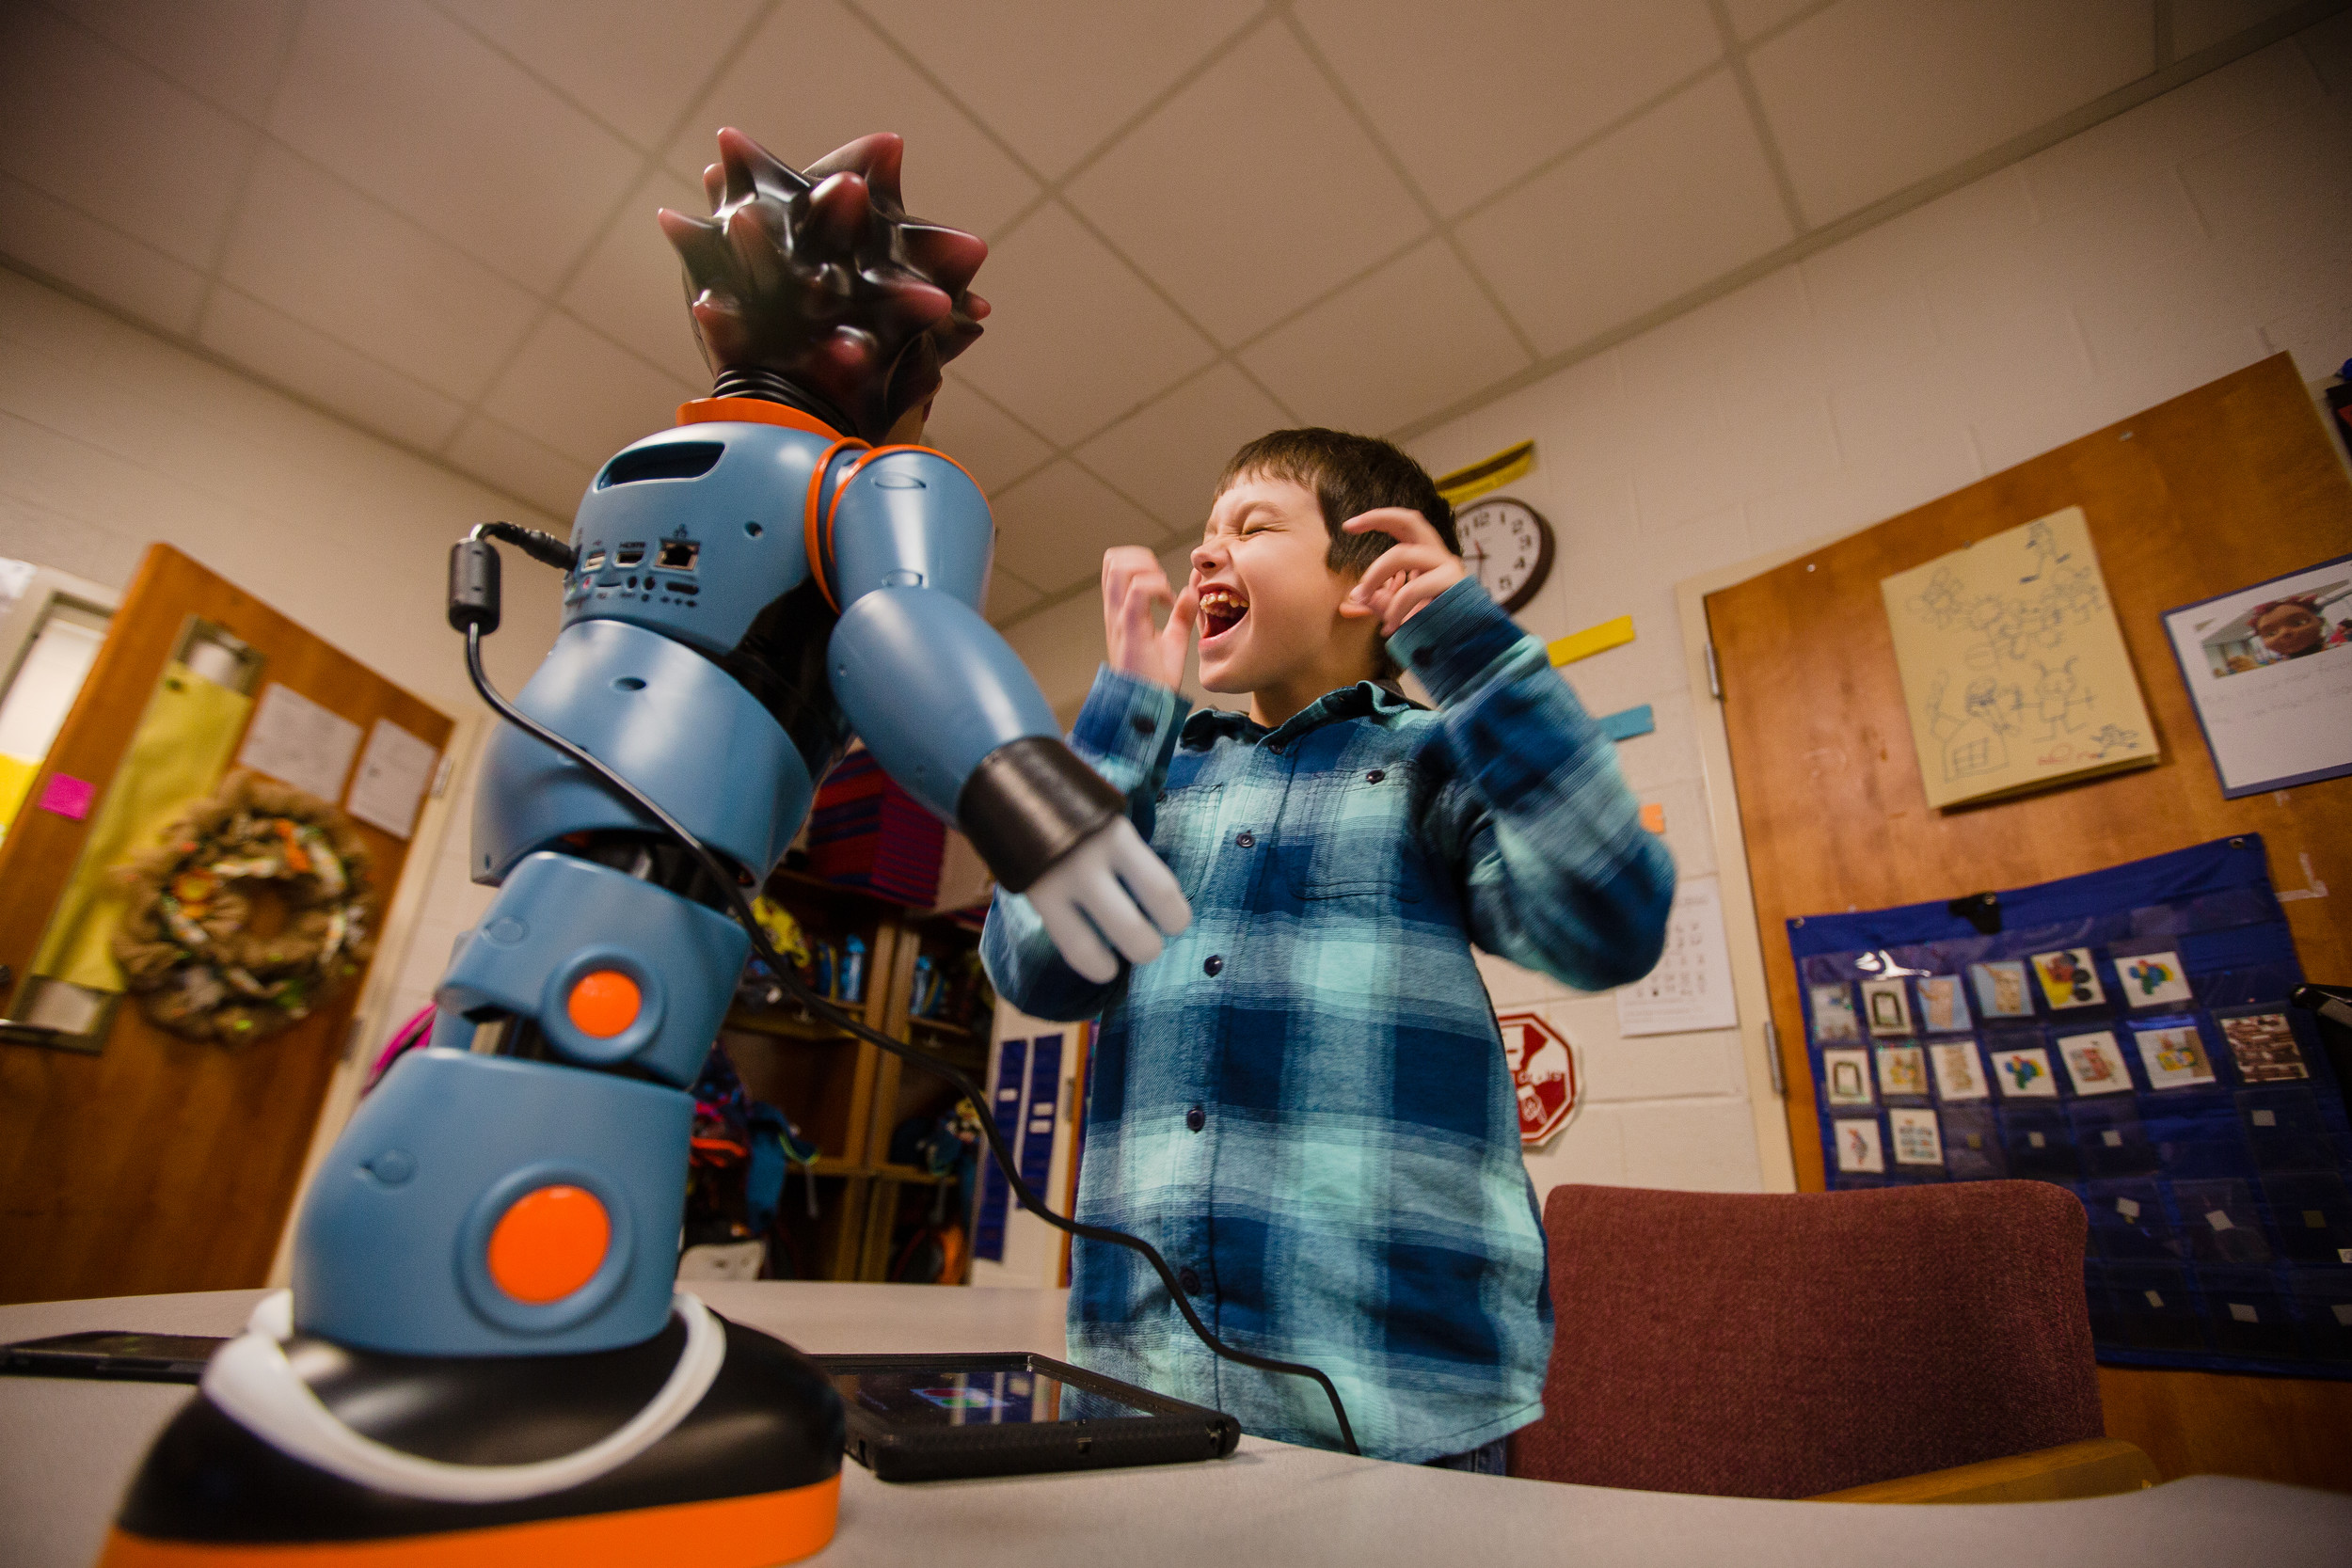 Devin Chaplin, 7, dances with Milo during exercises in Julie Jeffcoat's classroom at Kingsbury Elementary.